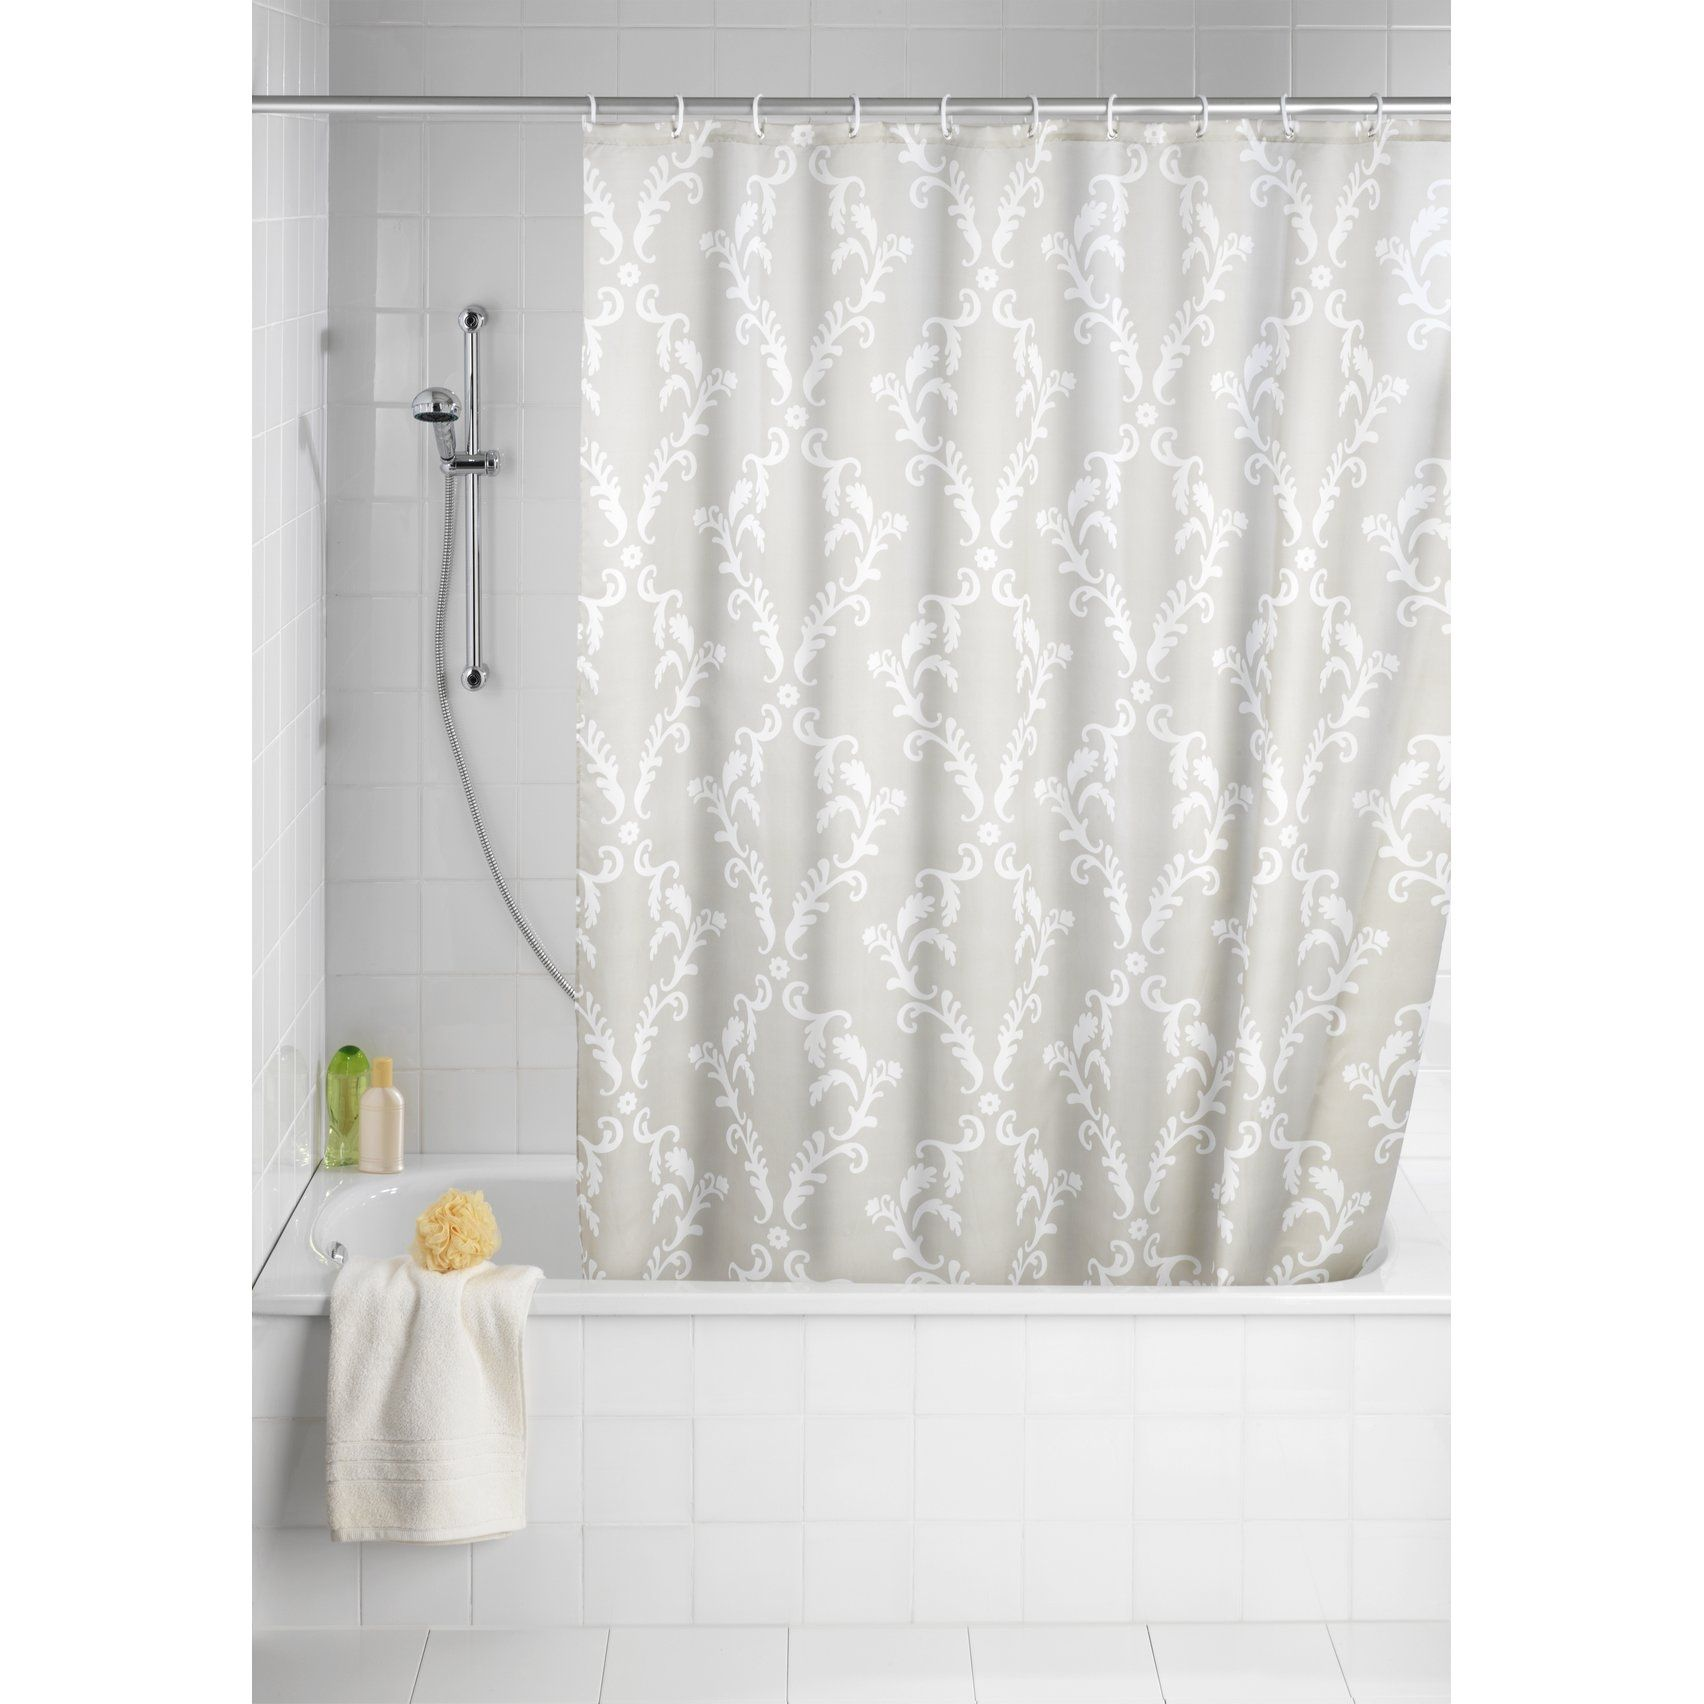 Anti Mould Shower Curtain | Shower Curtain | Pinterest | Bath